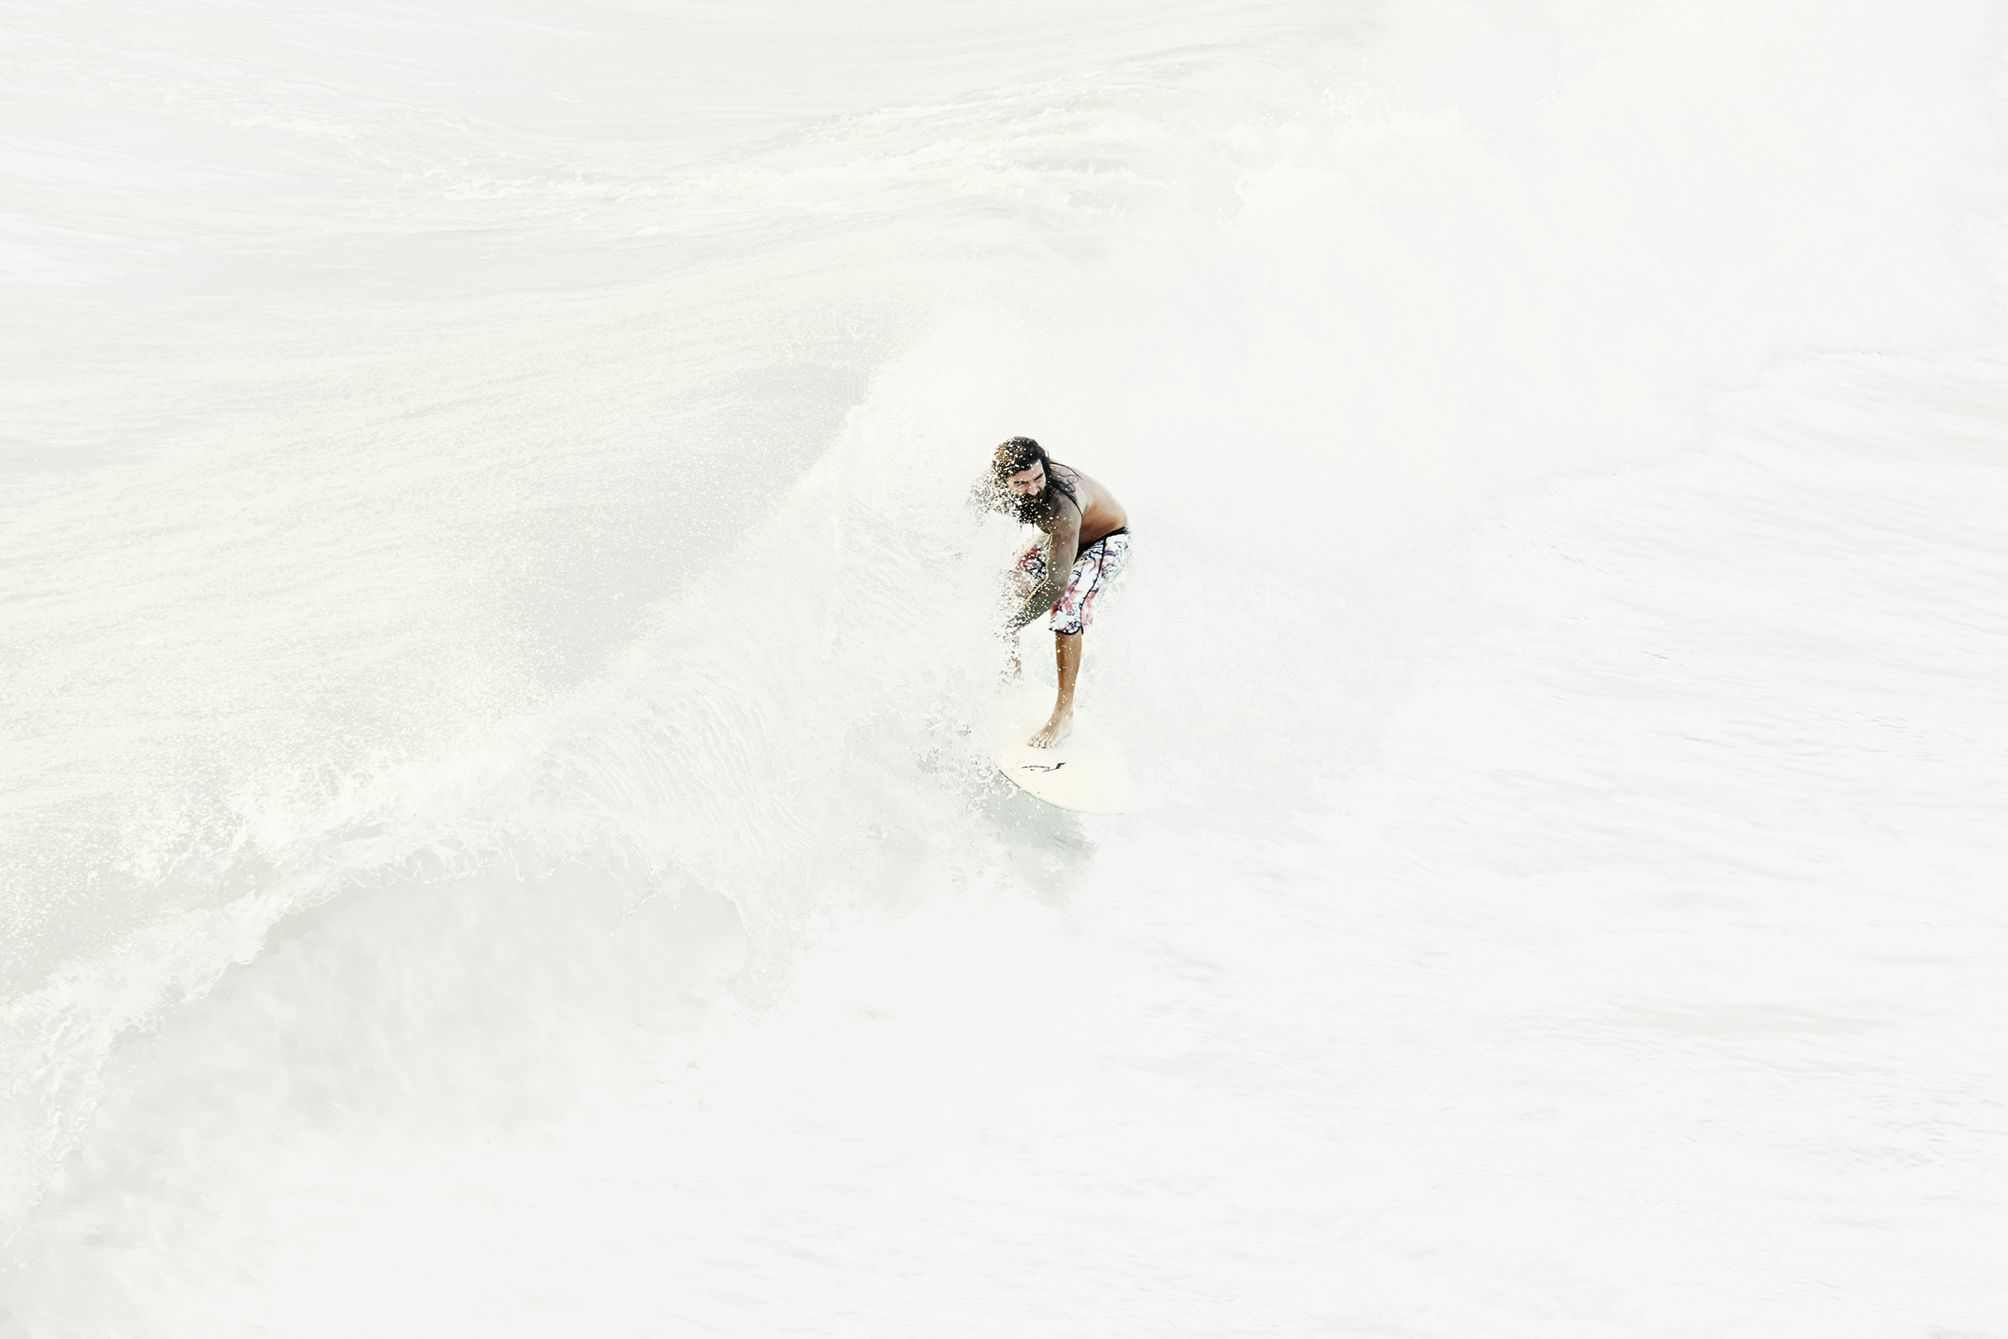 Surfer in a white sea surfing a wave.